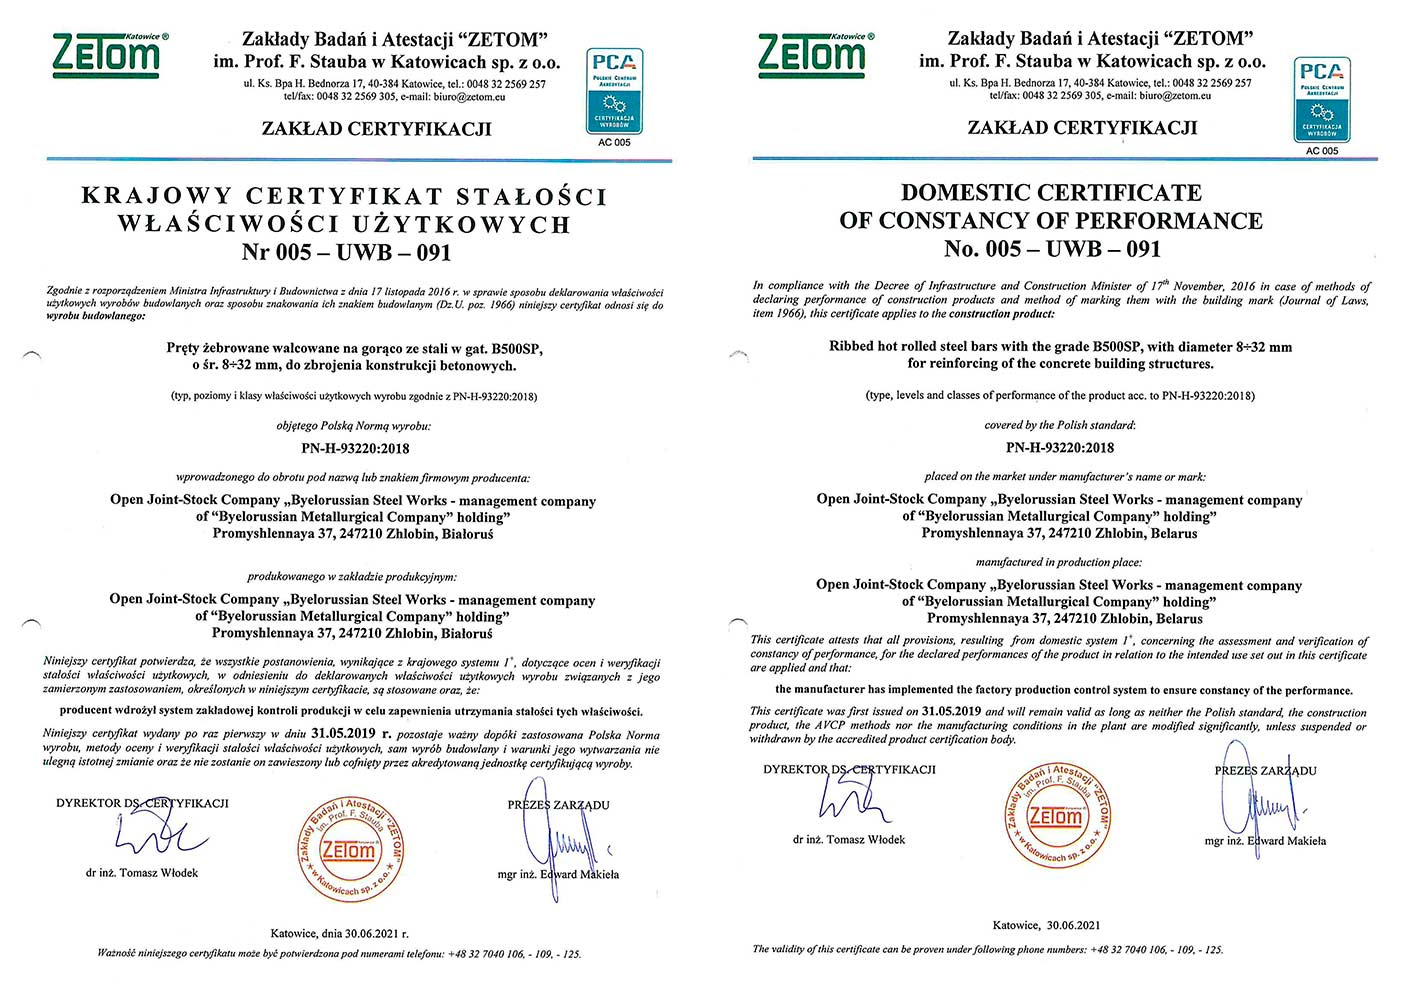 Certificate No. 005-UWB-091 (ZETOM, Poland) for production of reinforcing steel grade В500SP in bars of diameter 8- 20 mm for concrete reinforcement of building constructions in compliance with PN-H-93220:2018